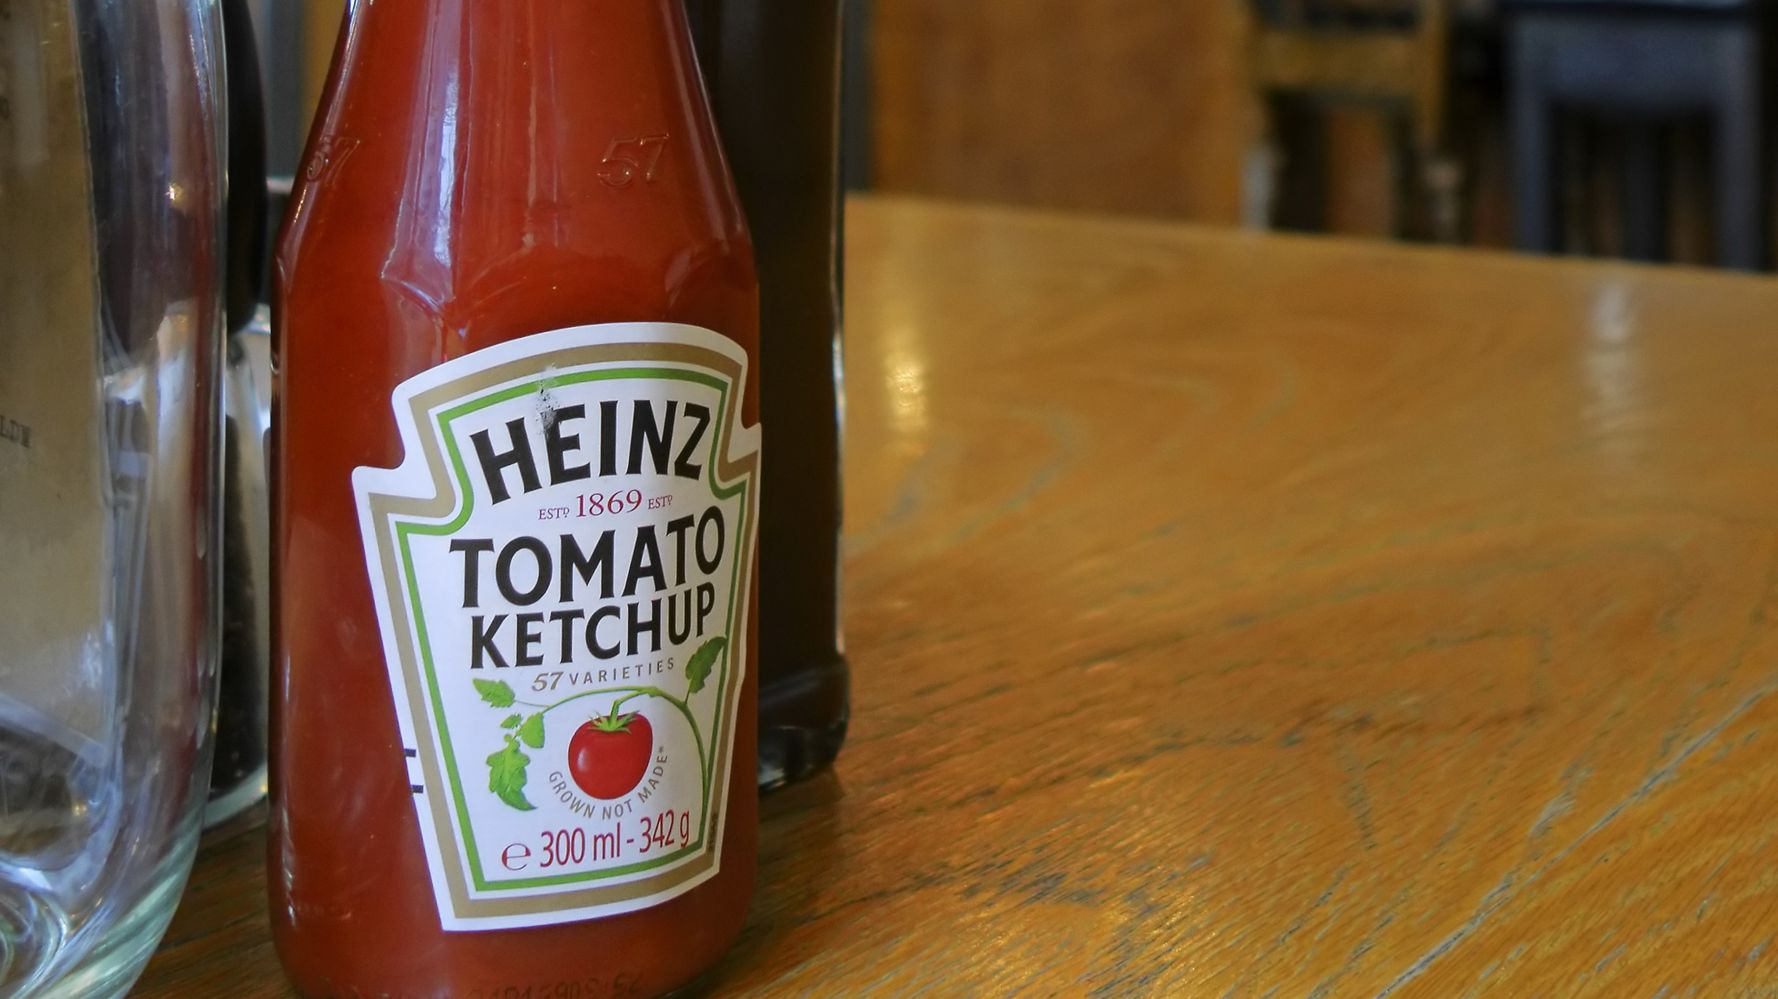 This Life Hack Will Help You Get Heinz Tomato Ketchup Out Of The